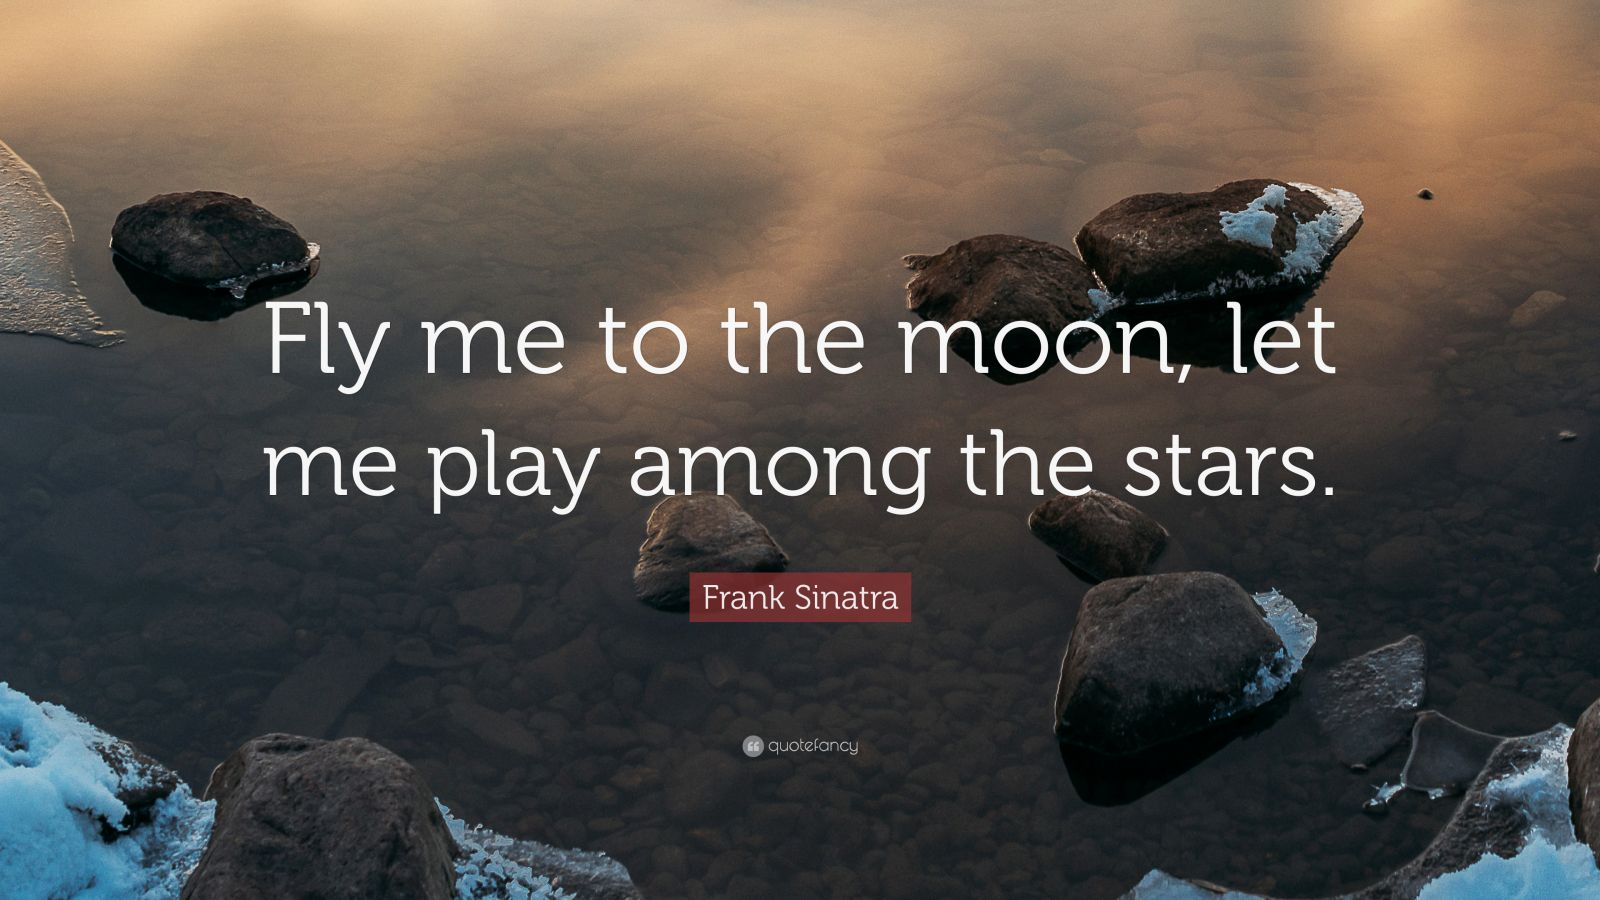 let me play among the stars;